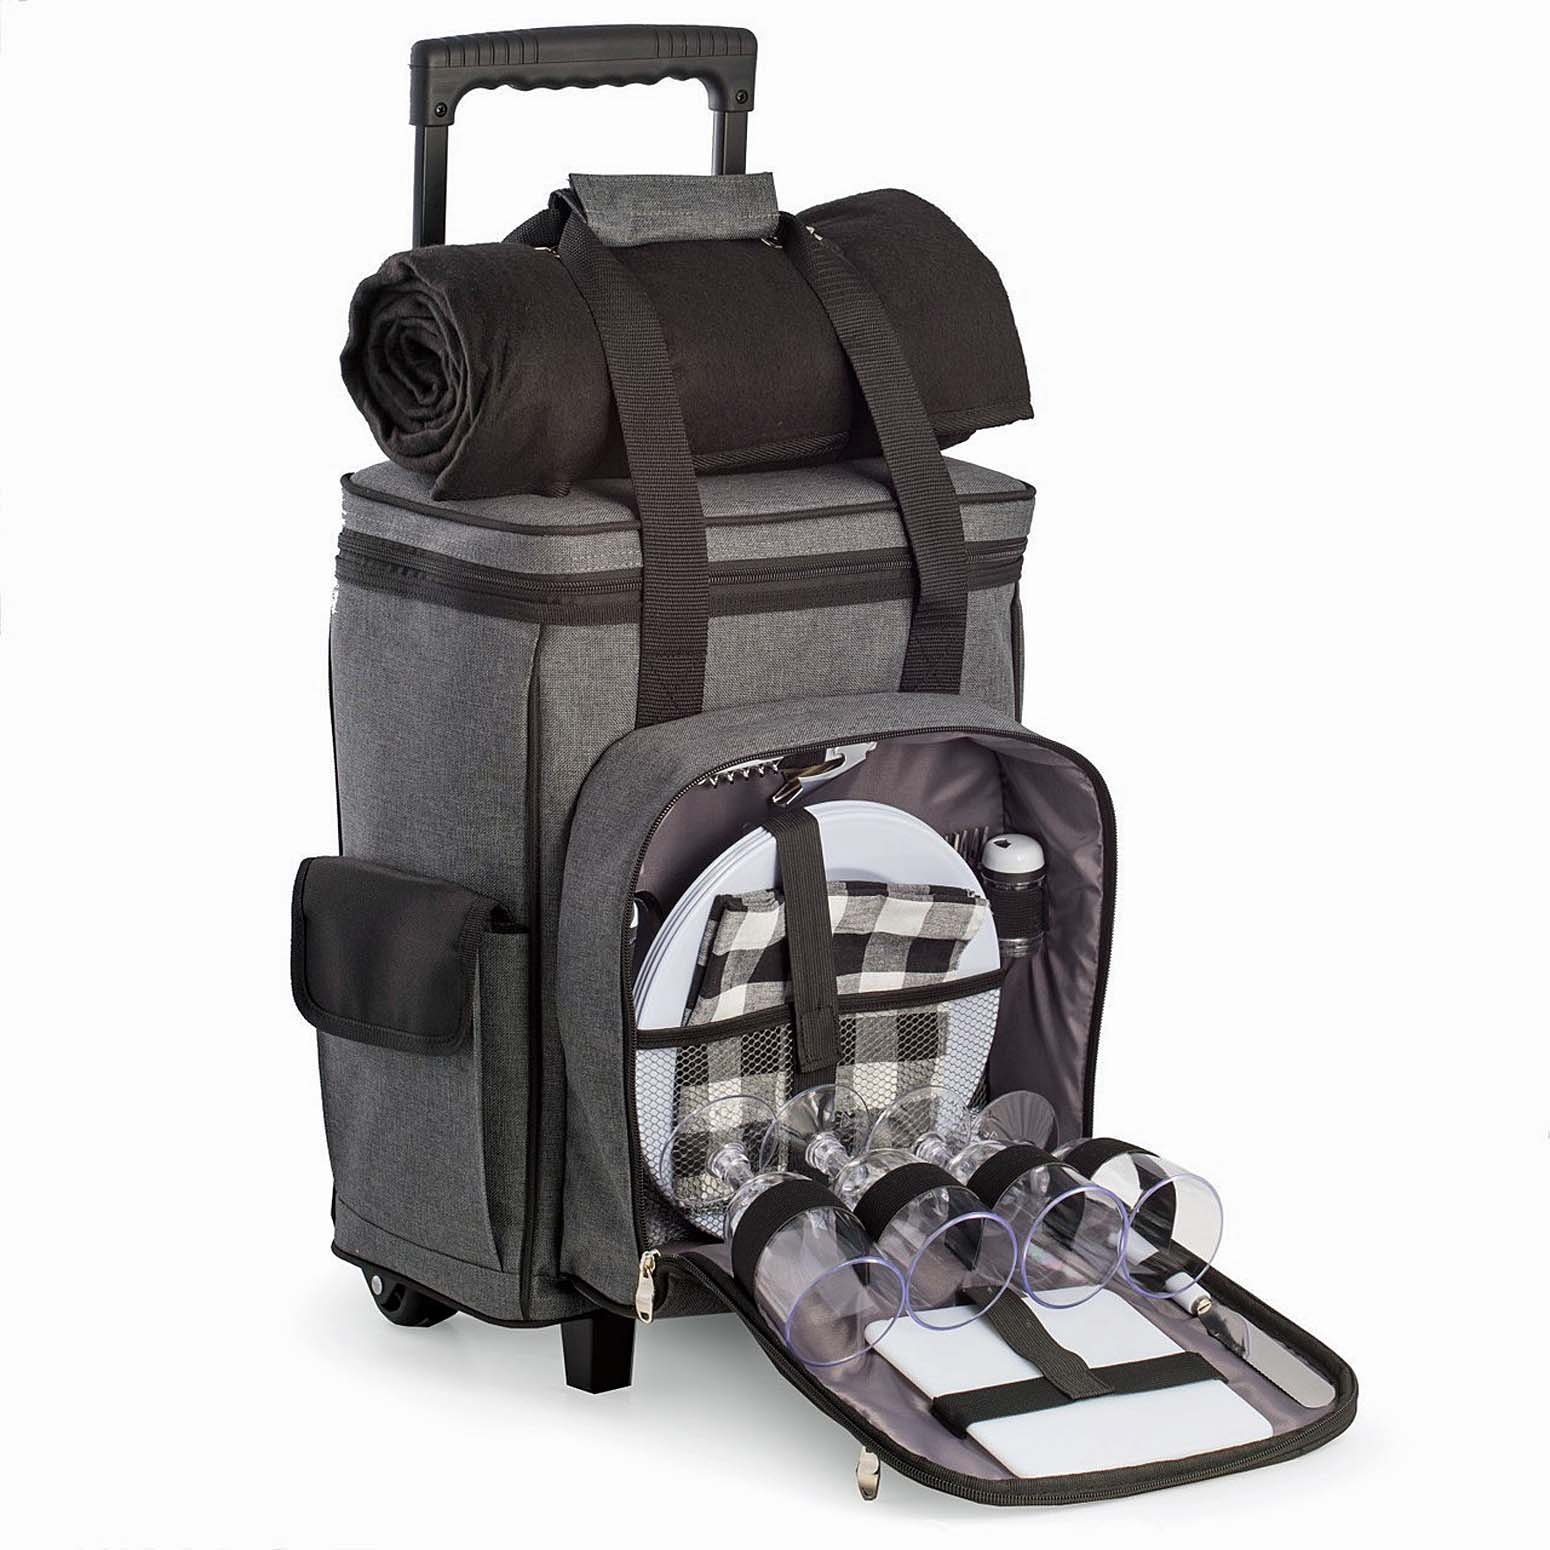 Kensington Row Home Collection - EPSOM DERBY 4-PERSON PICNIC TROLLEY WITH COOLER COMPARTMENT & FLEECE BLANKET